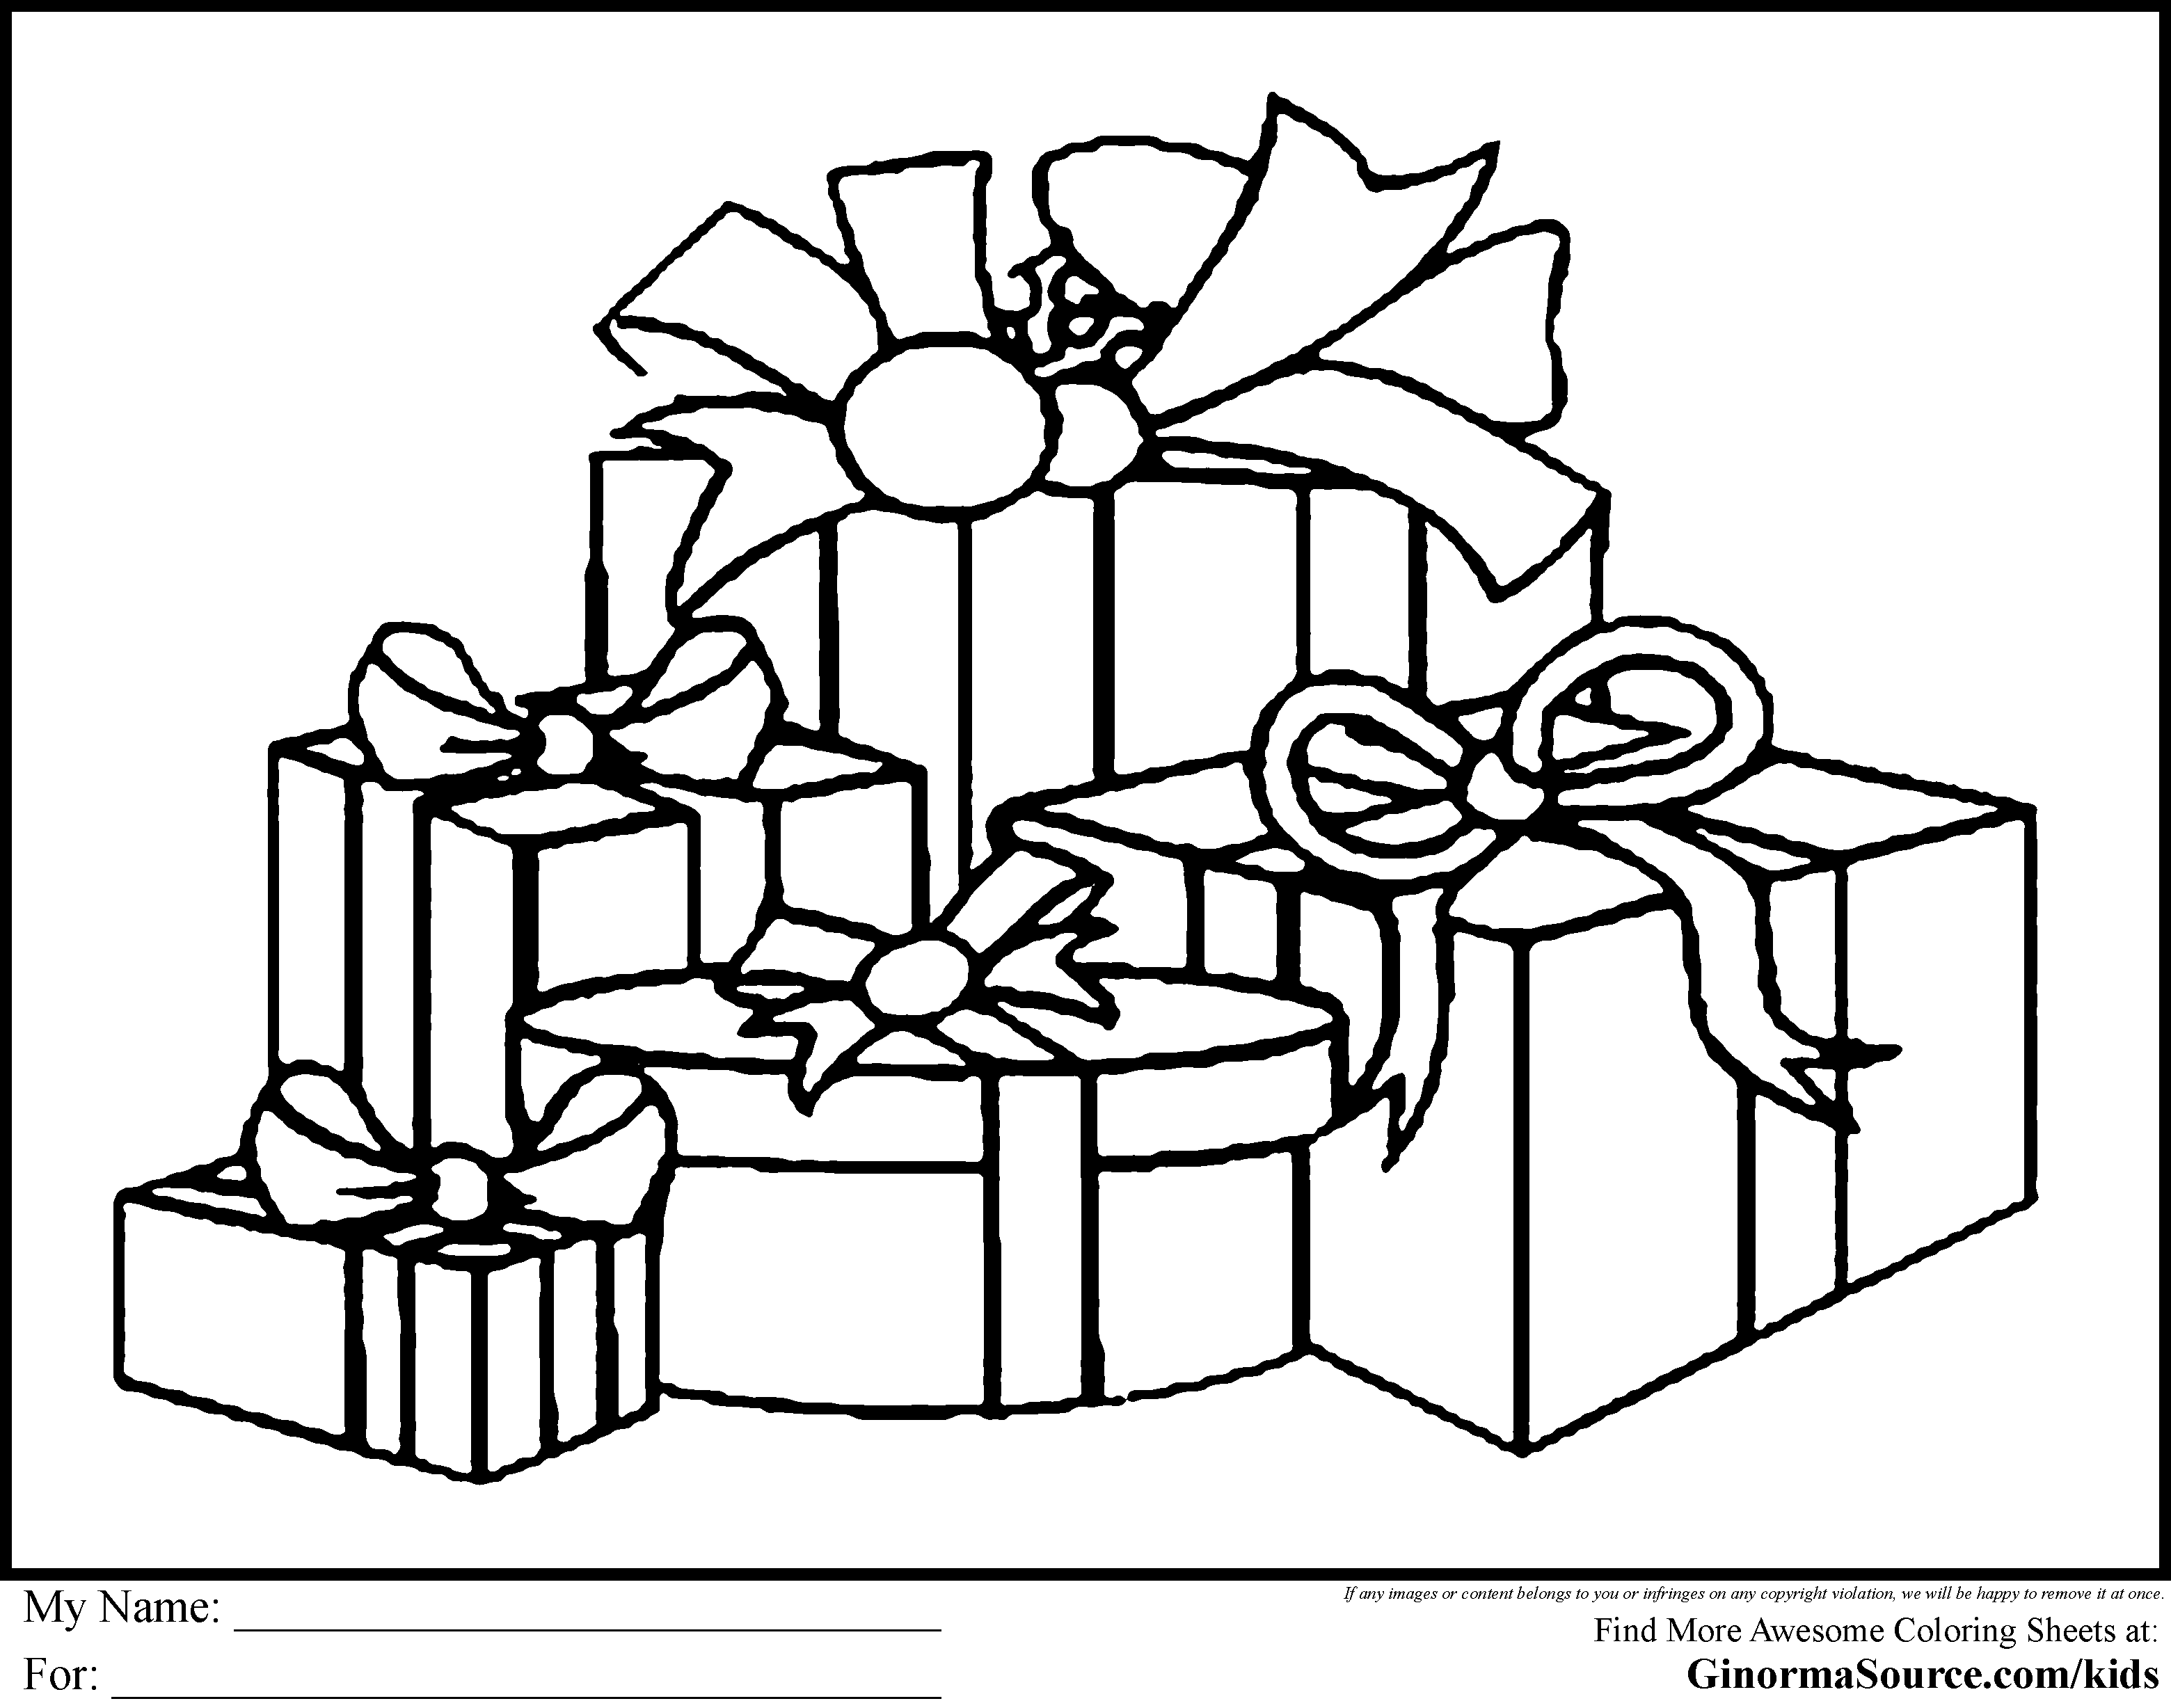 Christmas Tree With Presents Coloring Page Az Coloring Pages Tree Coloring Pages With Presents